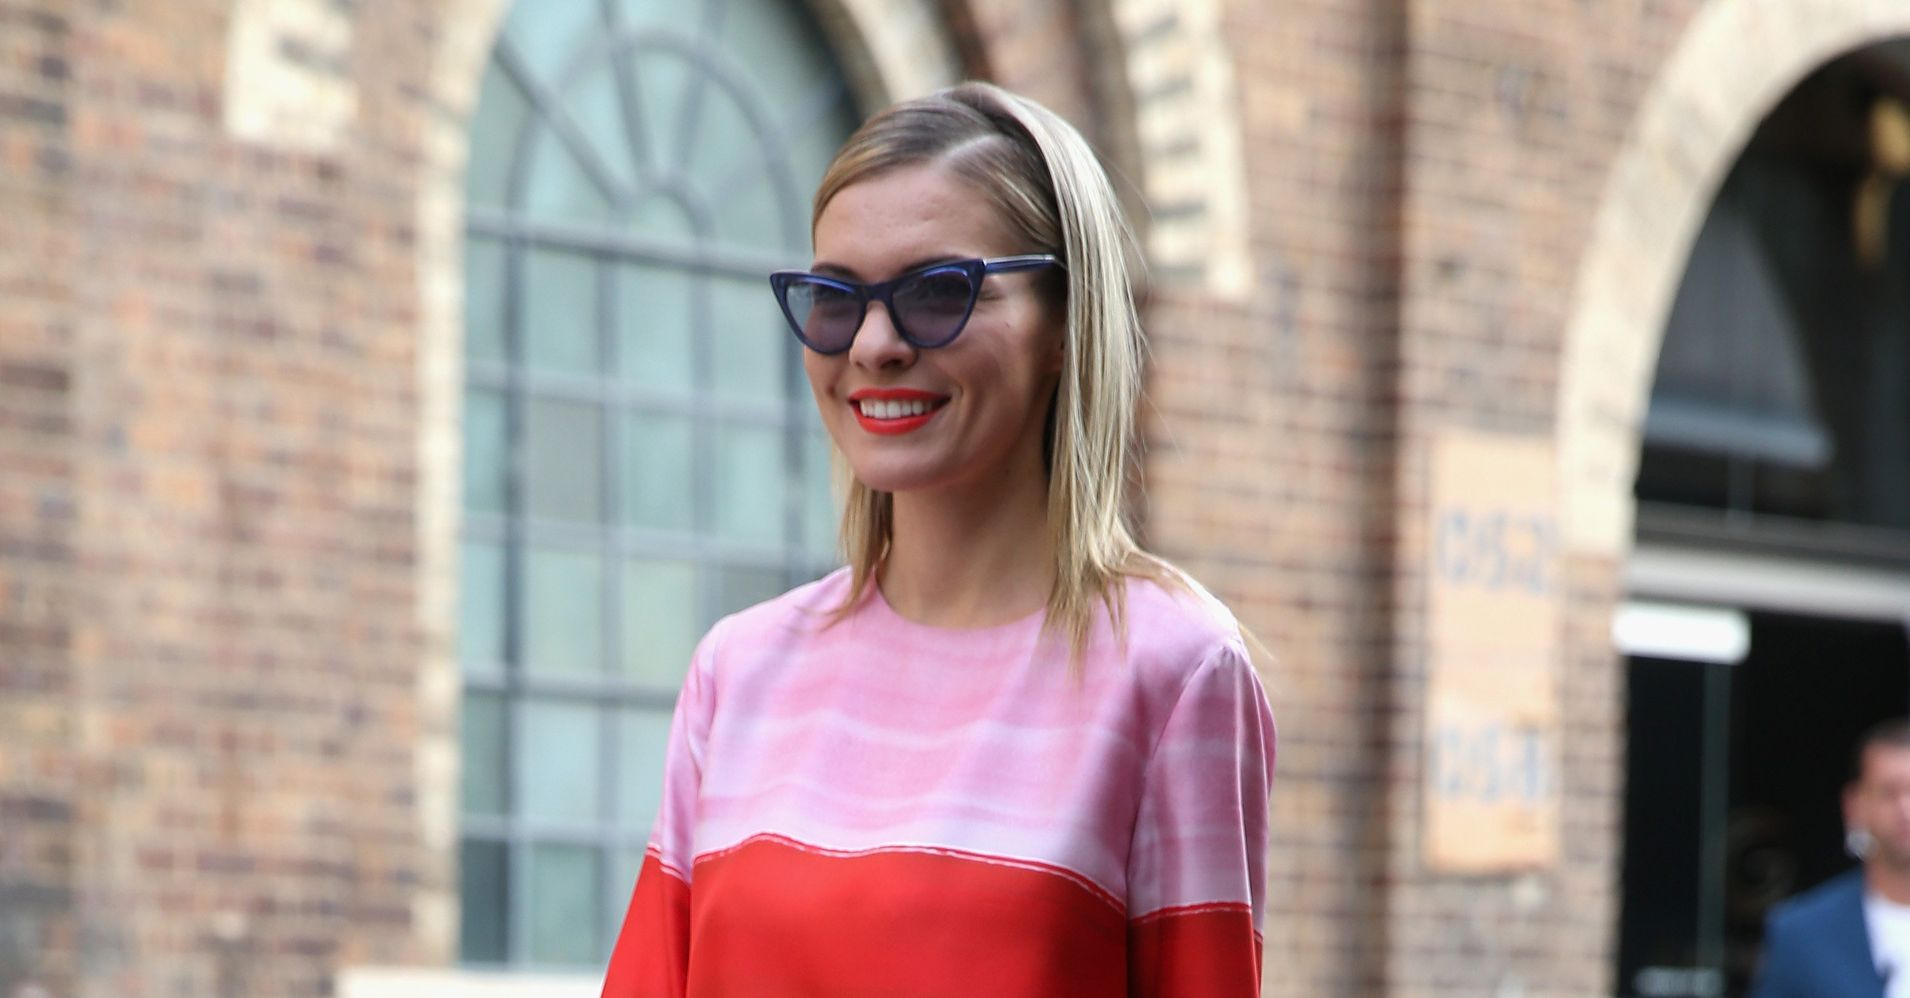 10 Stylish Ways To Wear Color Without Going Overboard